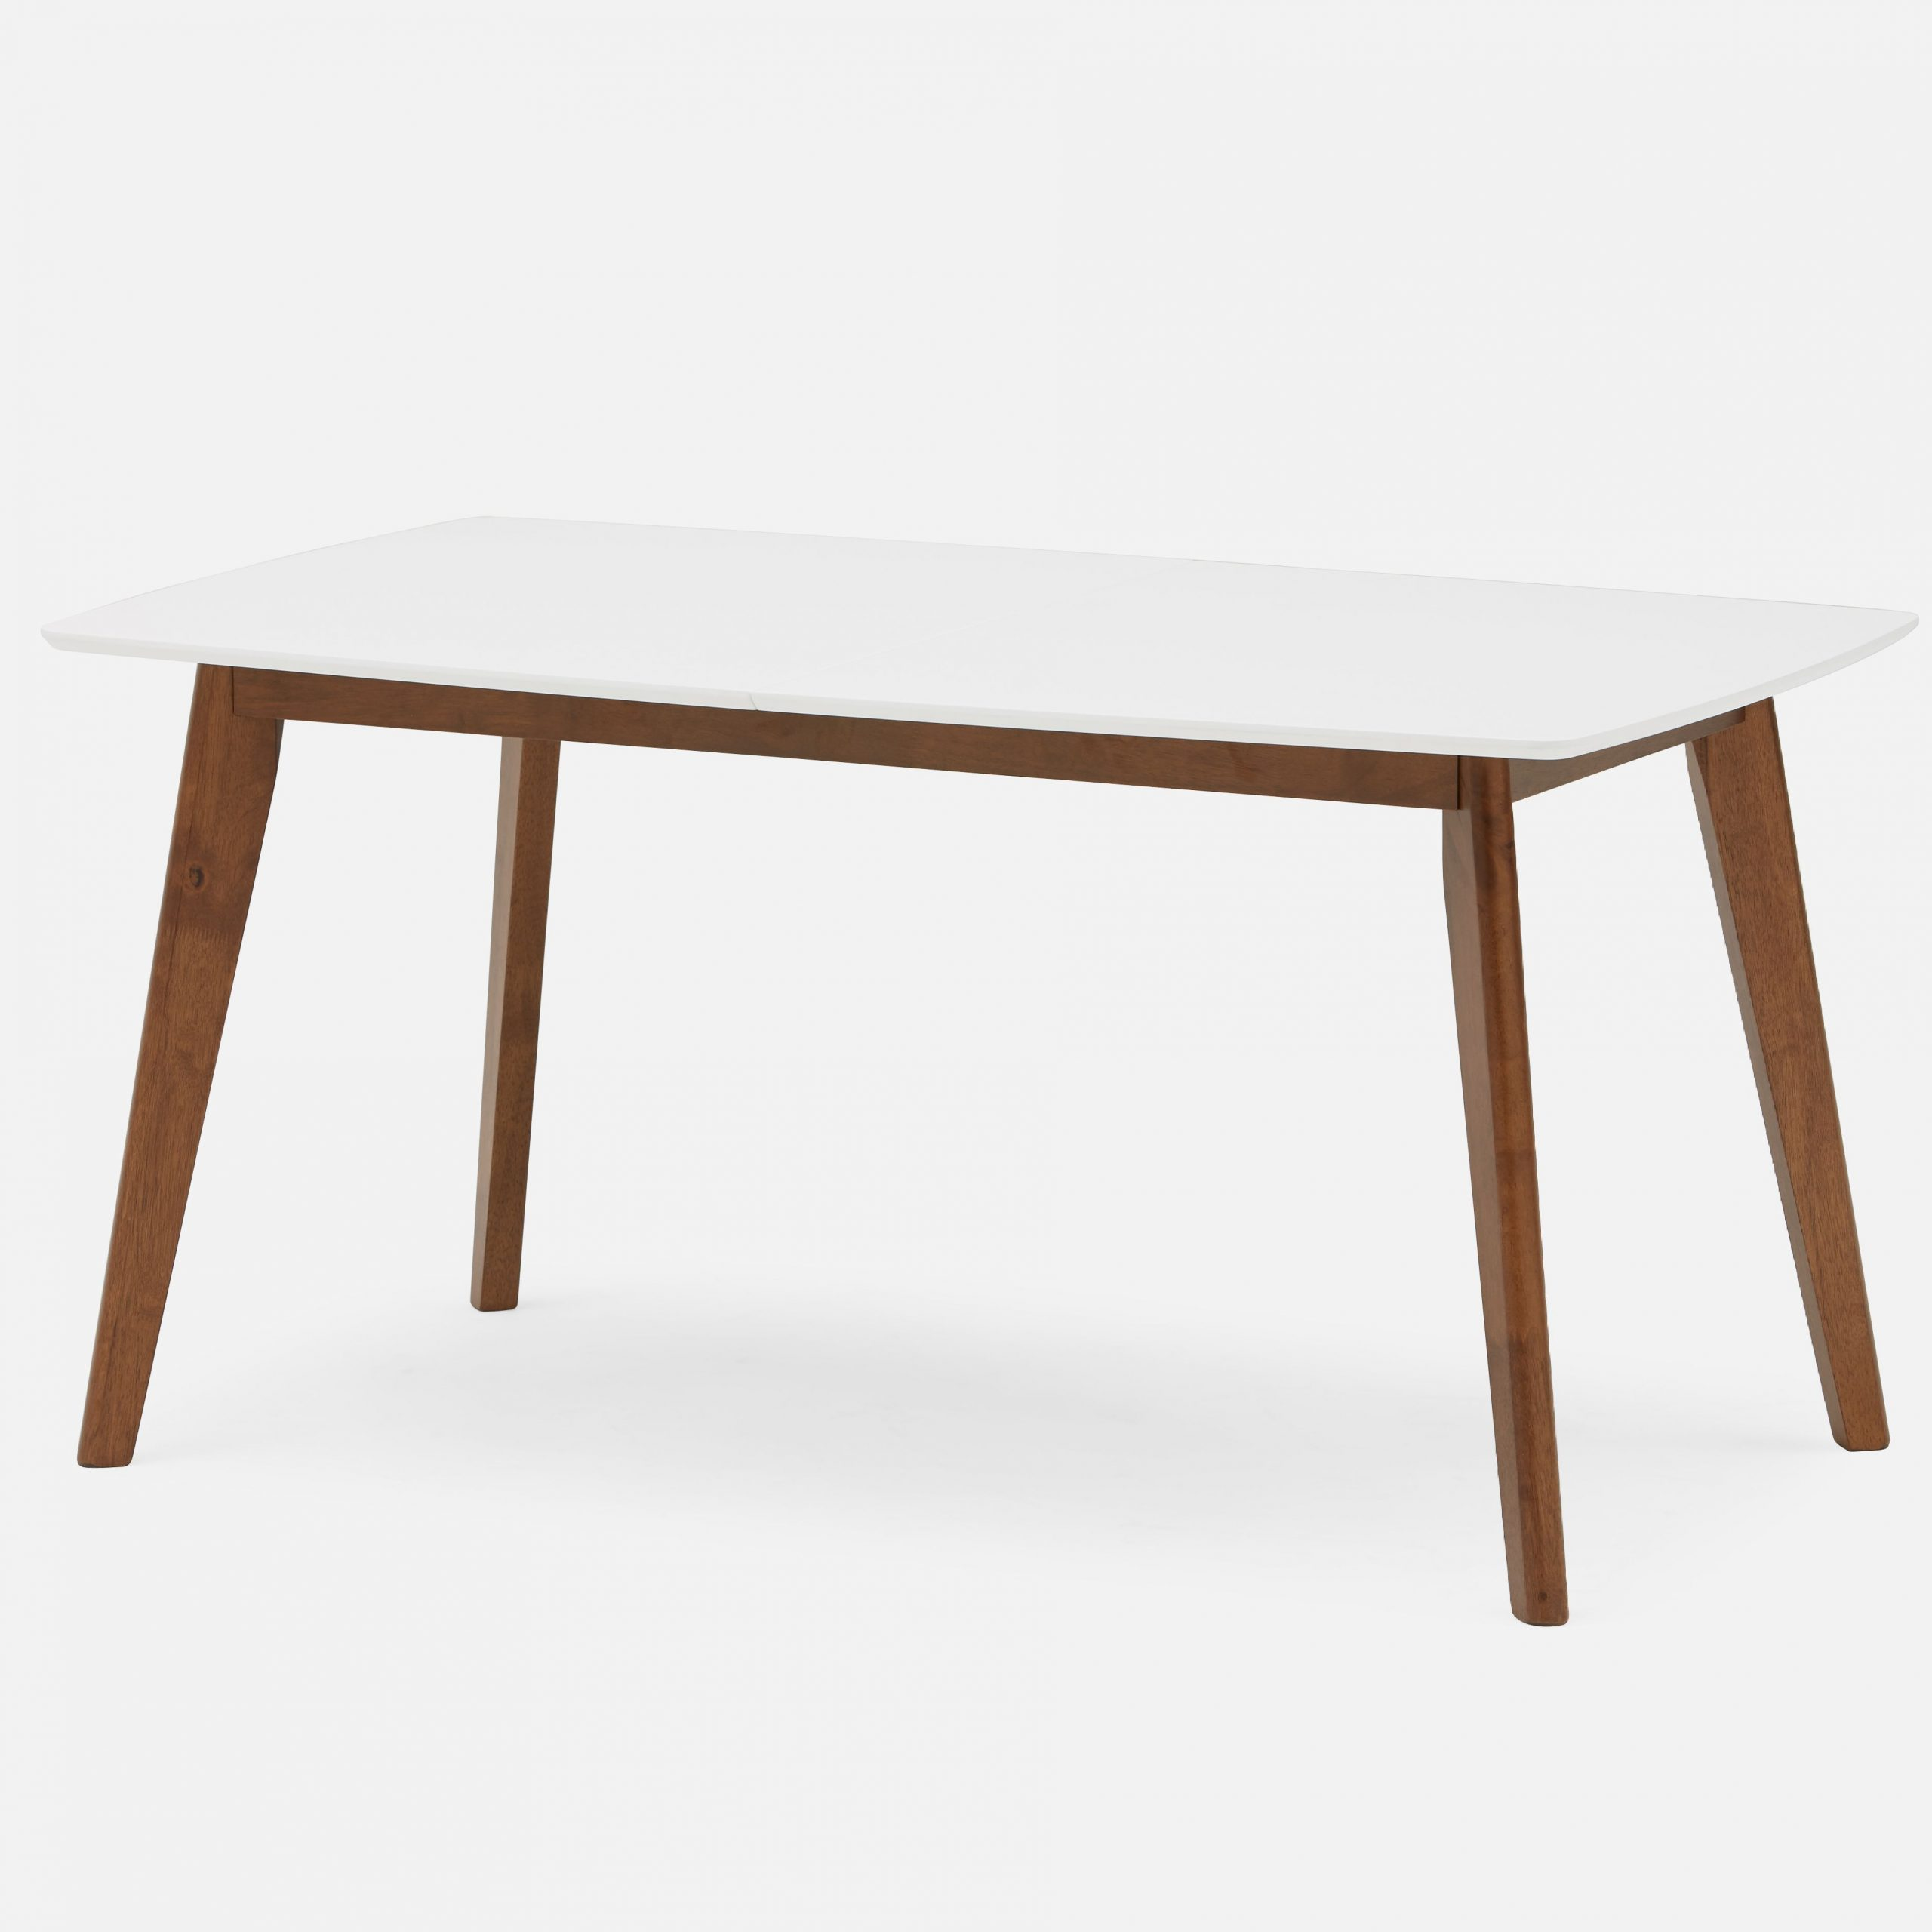 2019 Juhana Extendable Dining Table With Lacquered Top 150Cm To In Acacia Wood Dining Tables With Sheet Metal Base (View 18 of 25)